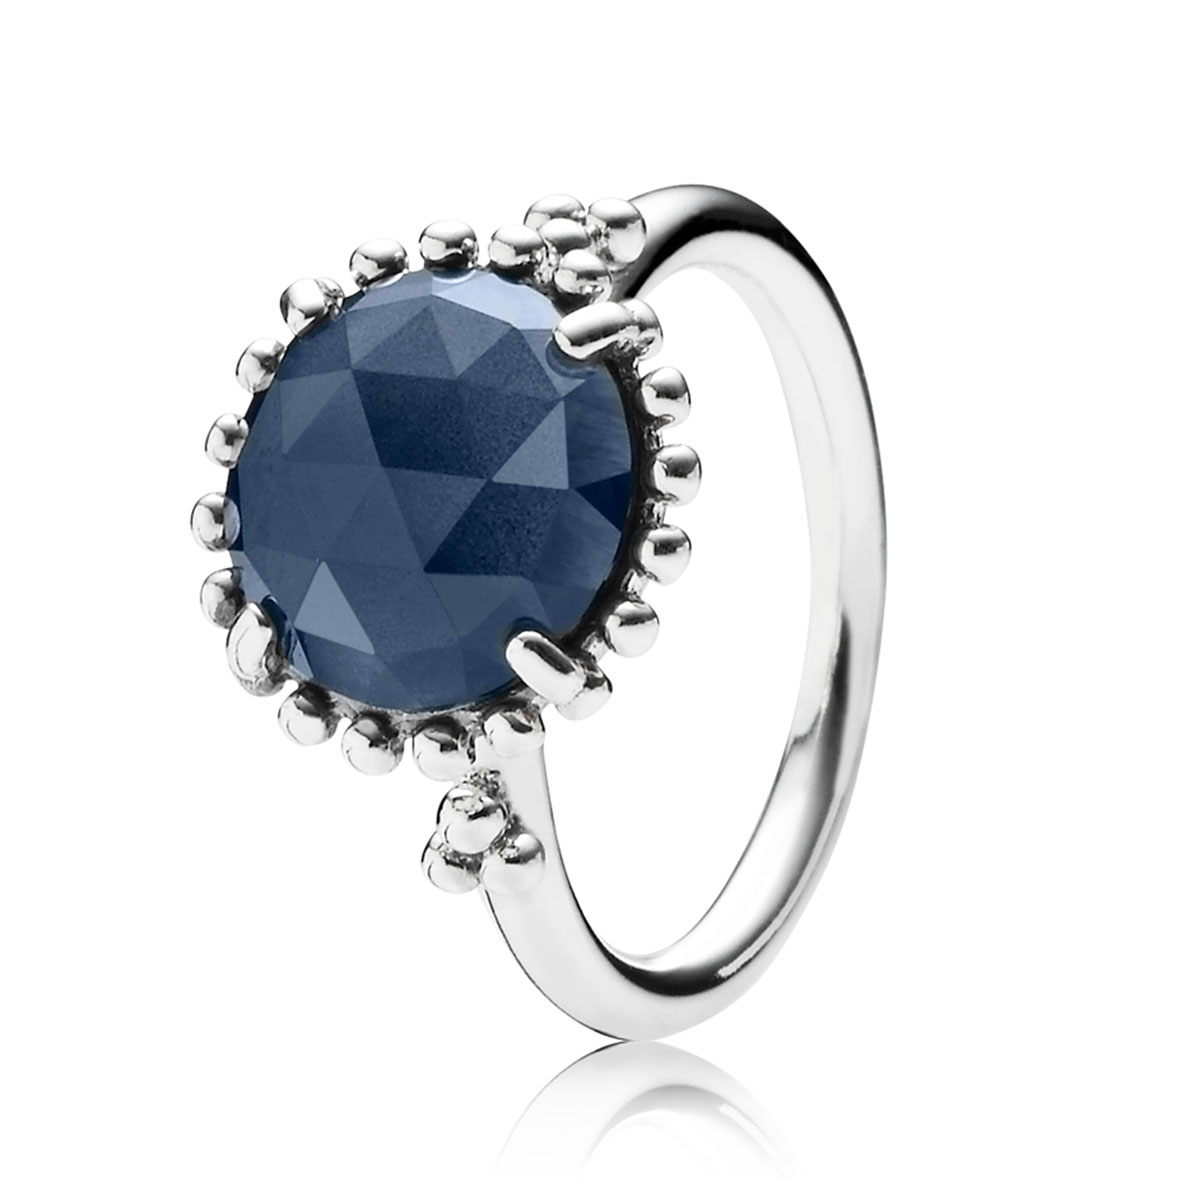 PANDORA Midnight Star with Midnight Blue Crystal Ring